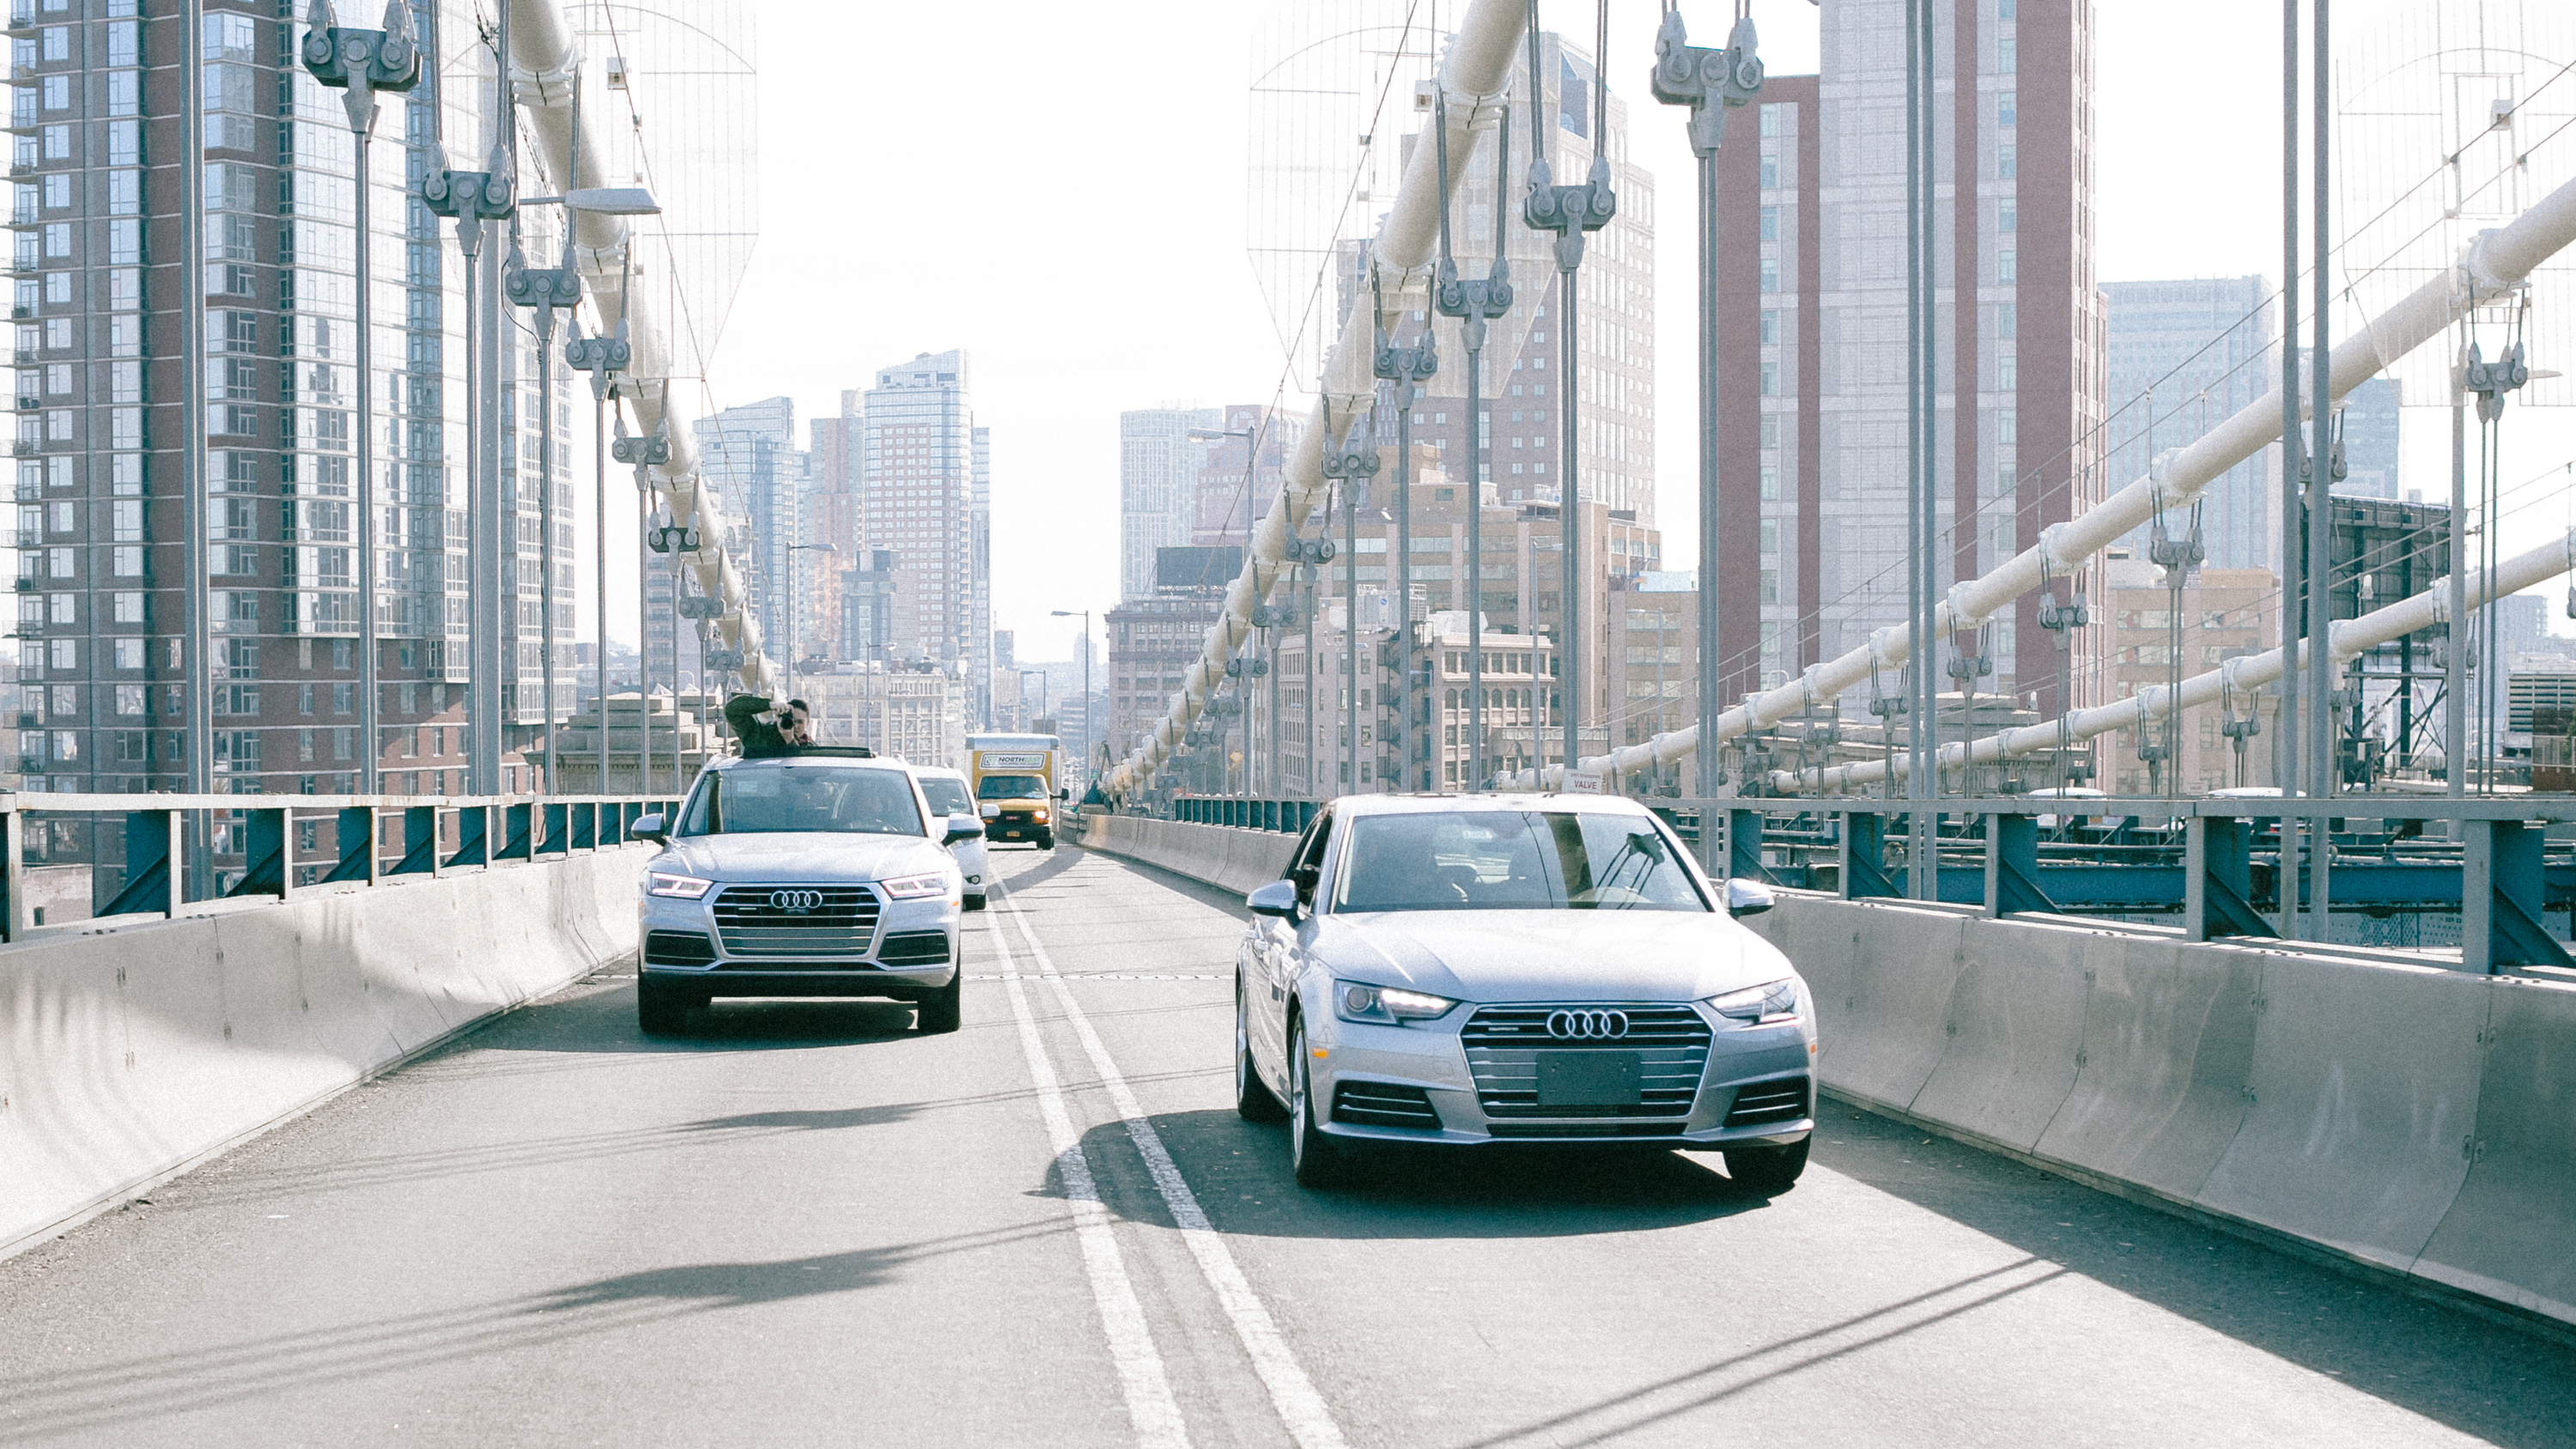 Where To Rent A Car In NYC For An Affordable Price